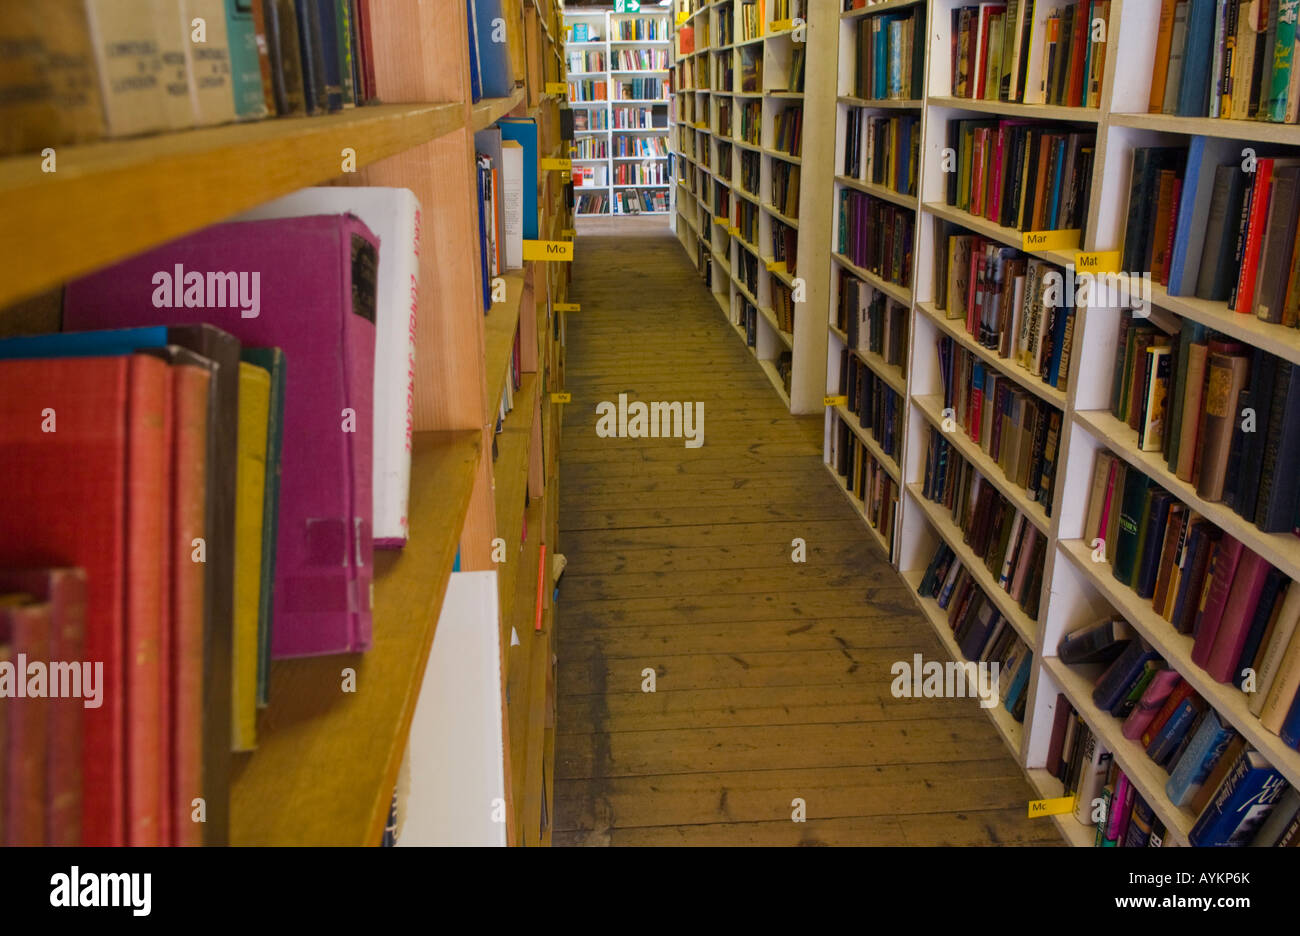 Shelf of books at Richard Booths Bookshop Hay on Wye Powys Wales UK EU the World's largest secondhand bookshop - Stock Image